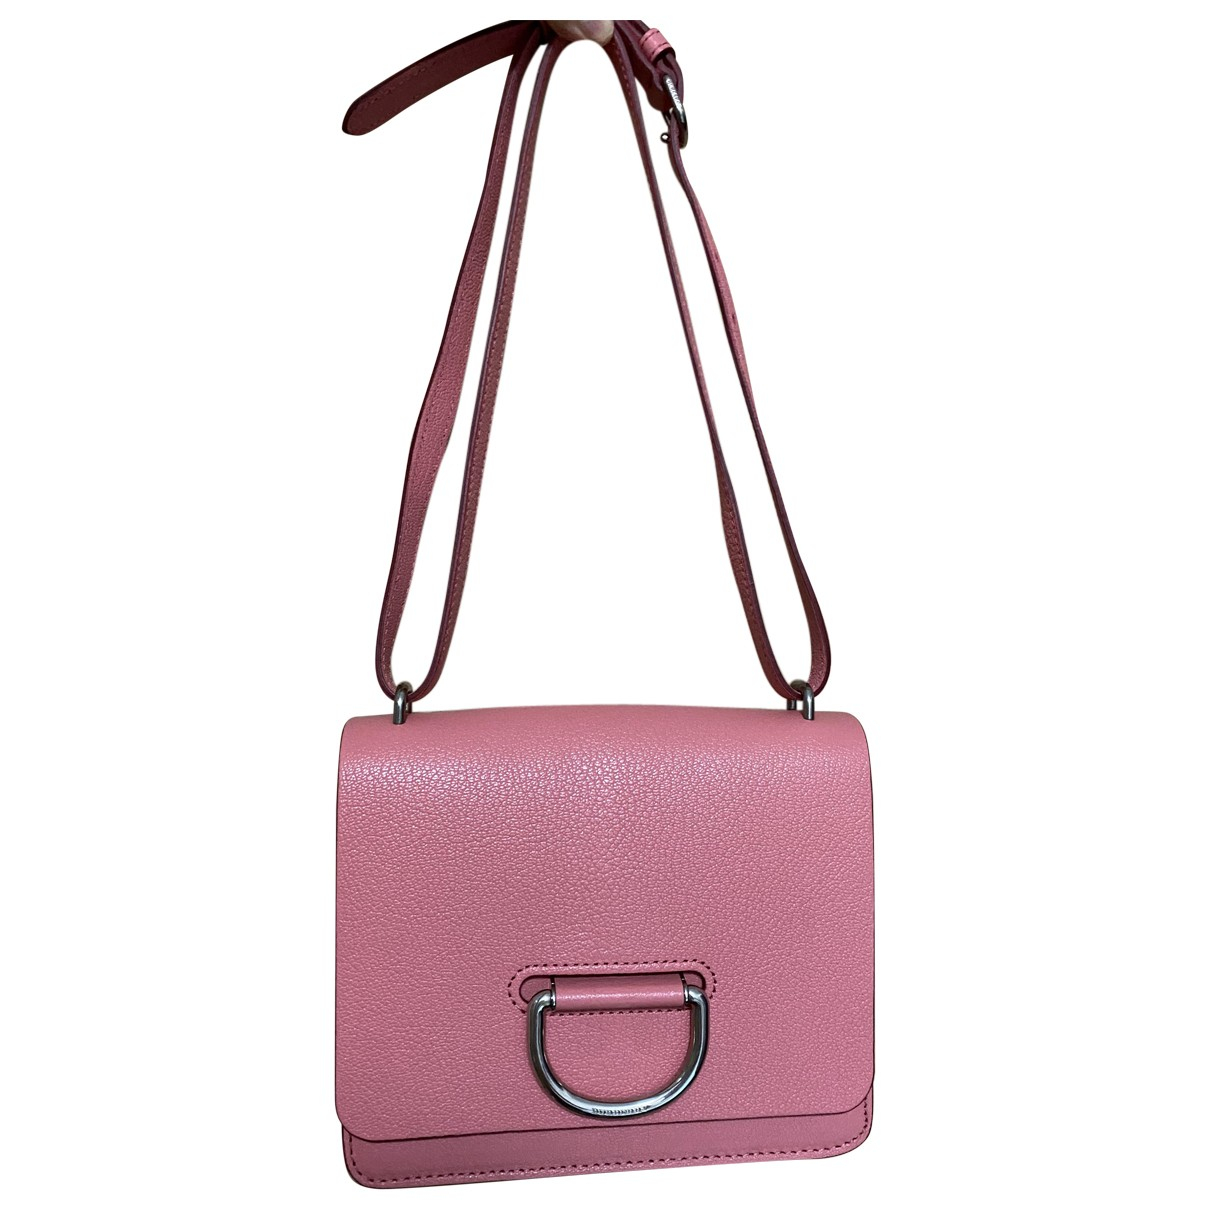 Burberry The D-ring Pink Leather handbag for Women N